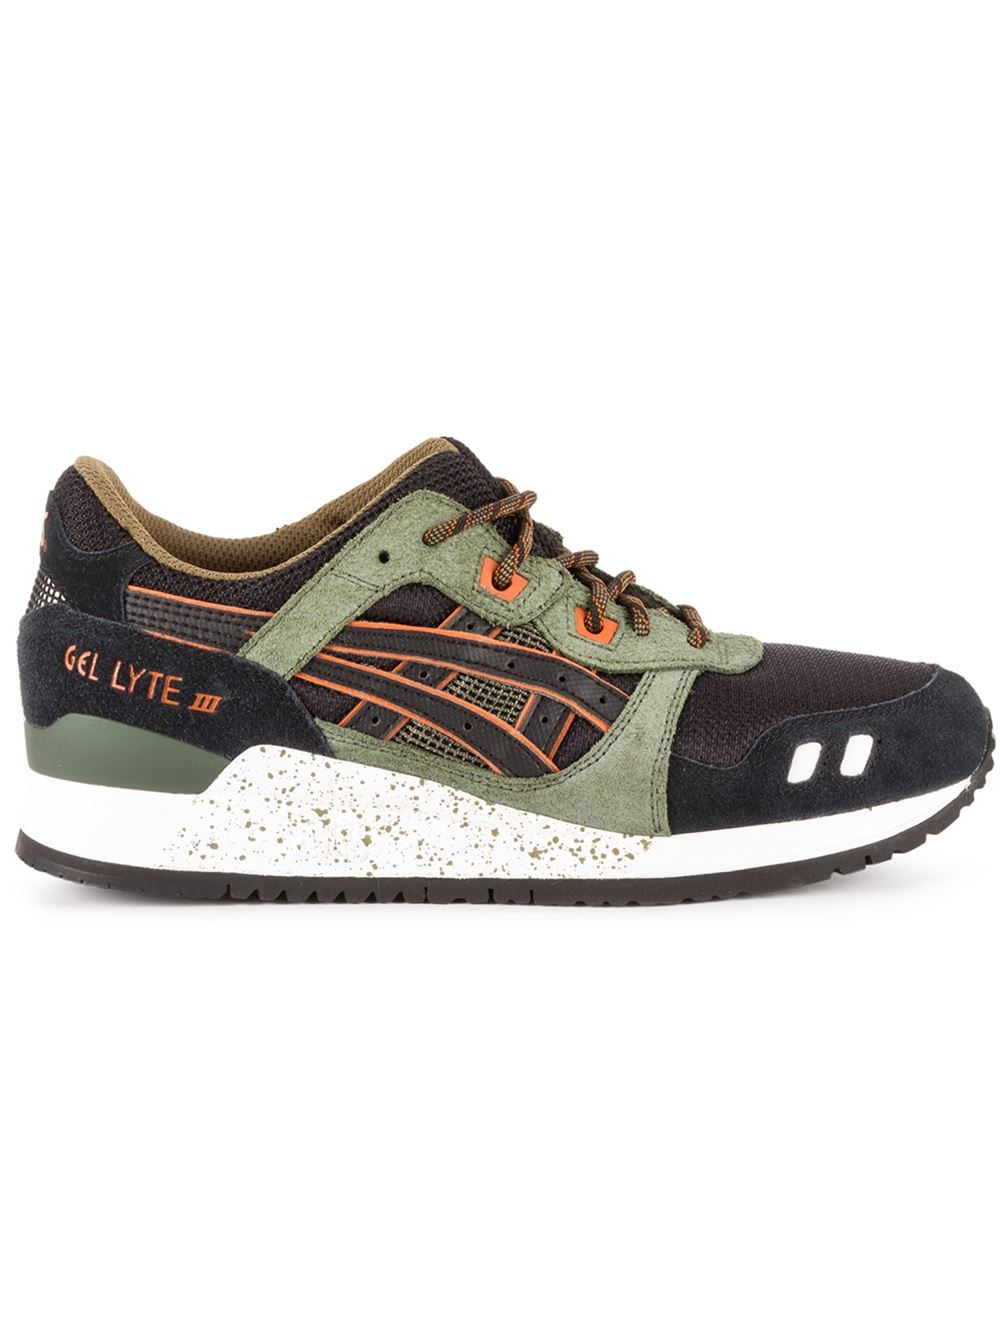 asics 39 gel lyte 3 39 sneakers in black lyst. Black Bedroom Furniture Sets. Home Design Ideas